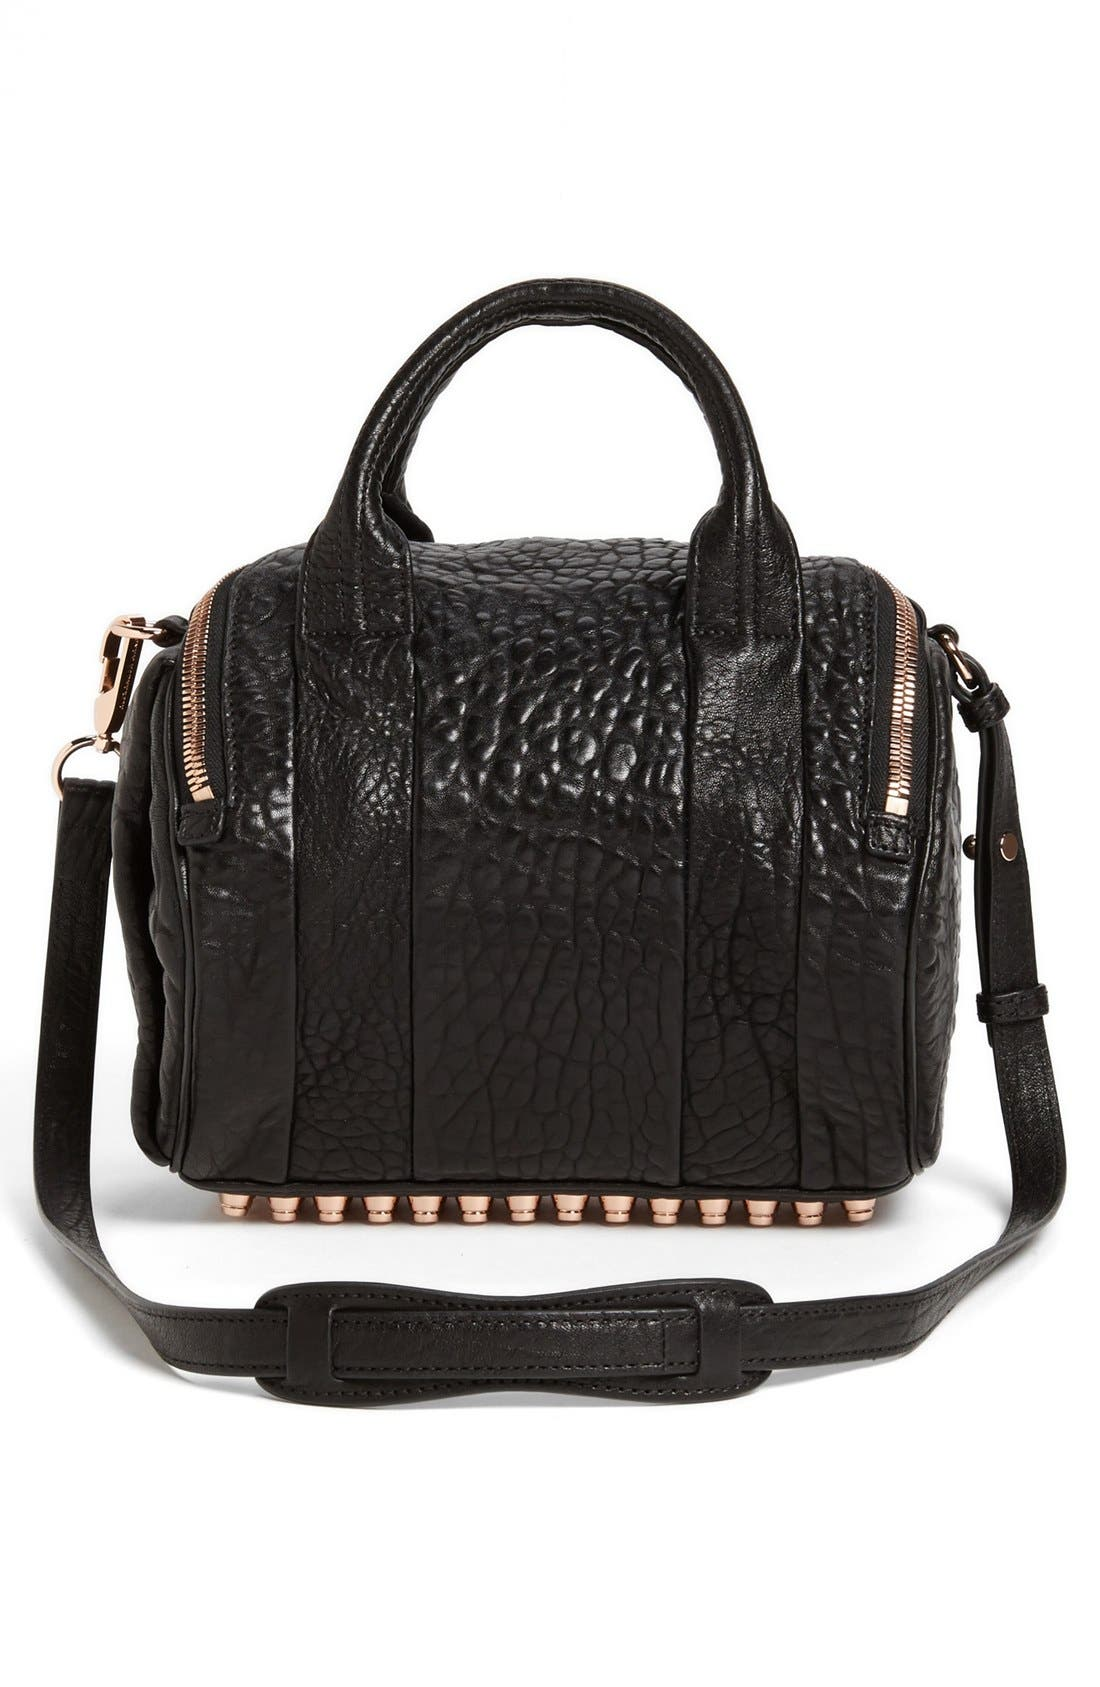 'Rockie - Rose Gold' Leather Crossbody Satchel,                             Alternate thumbnail 4, color,                             Black Rose Gld Hrdwre